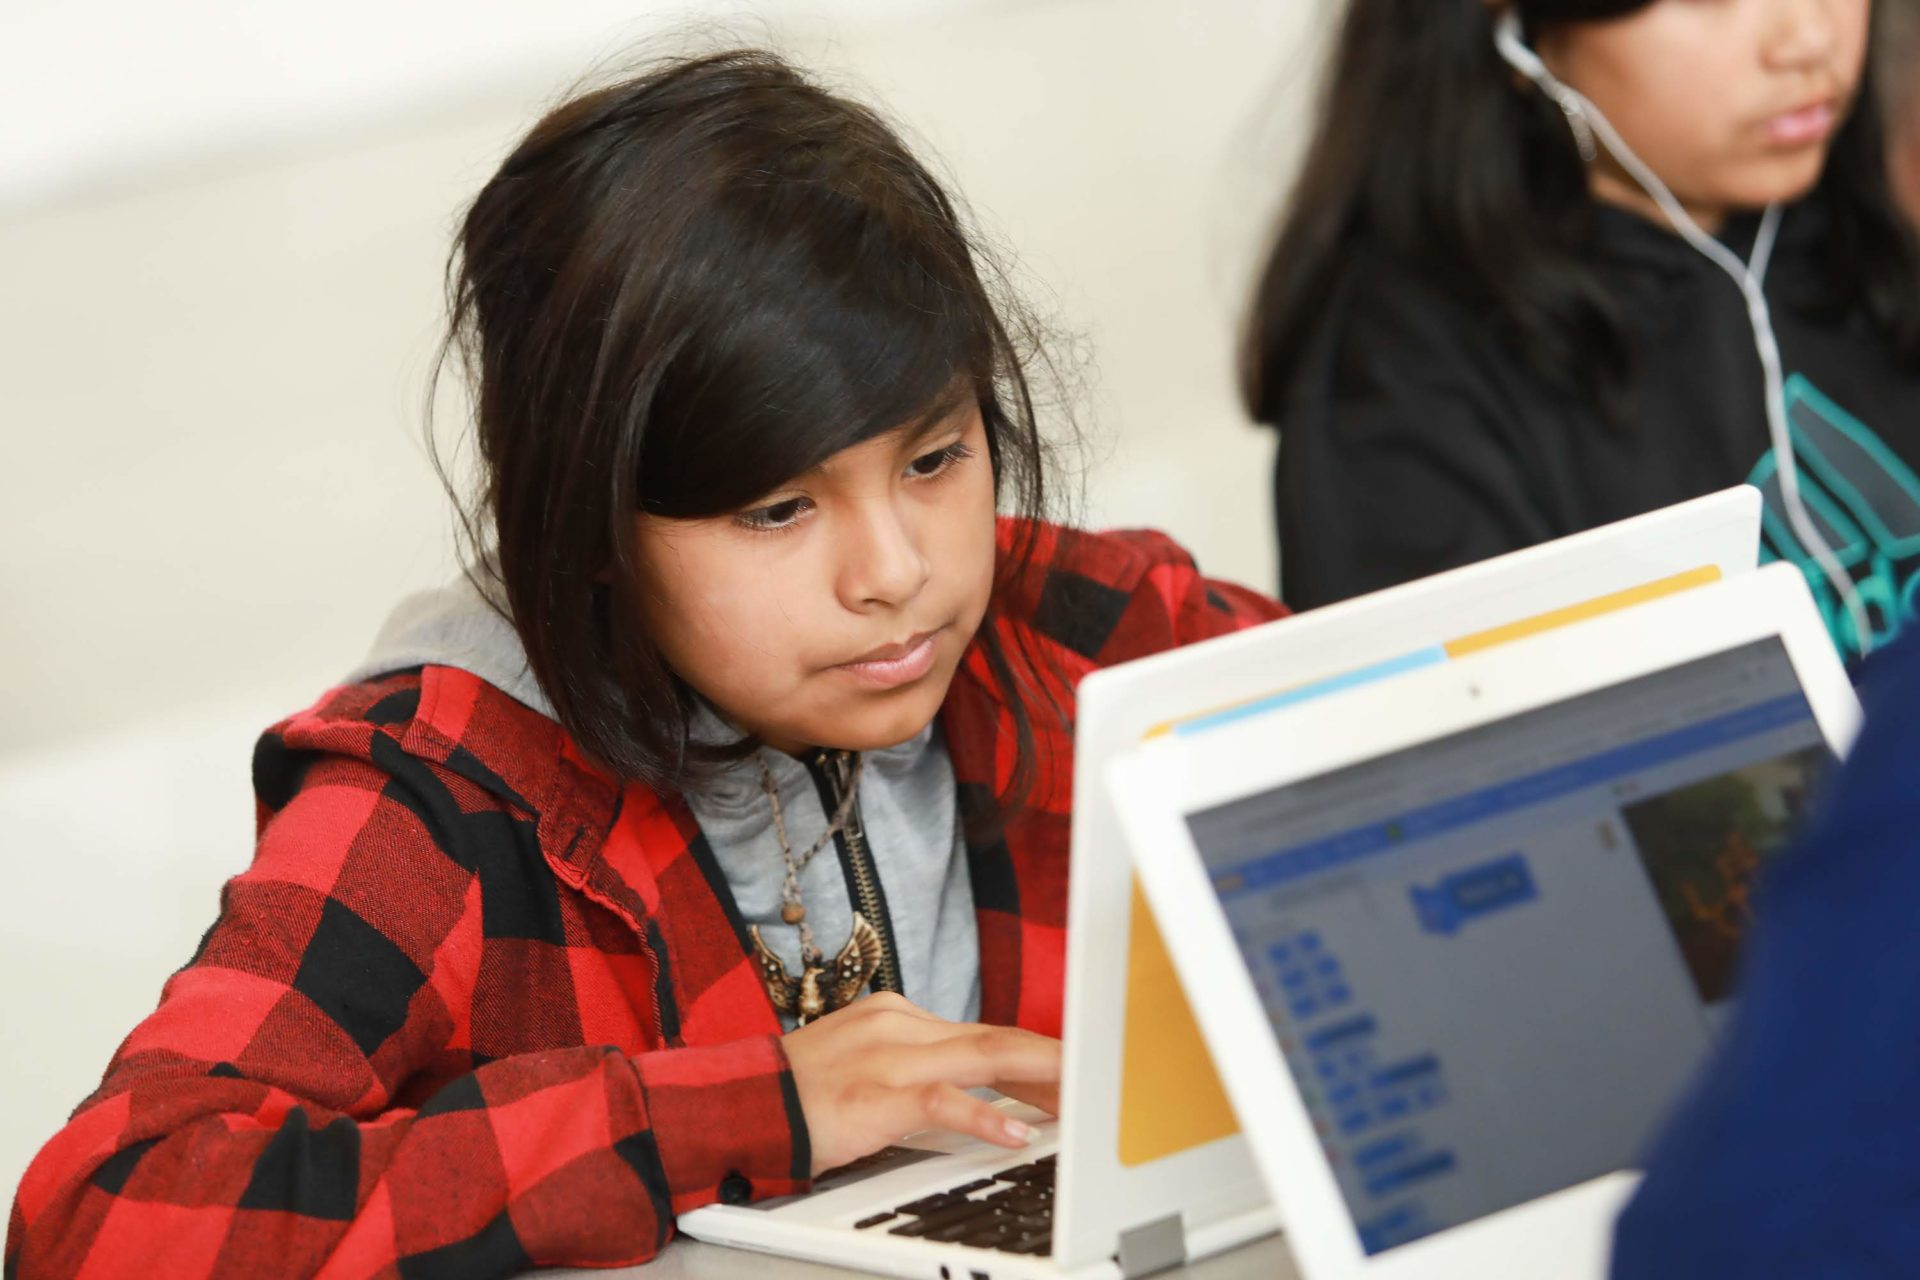 YWCA USA Receives Grant from Google to Support Girls in STEM